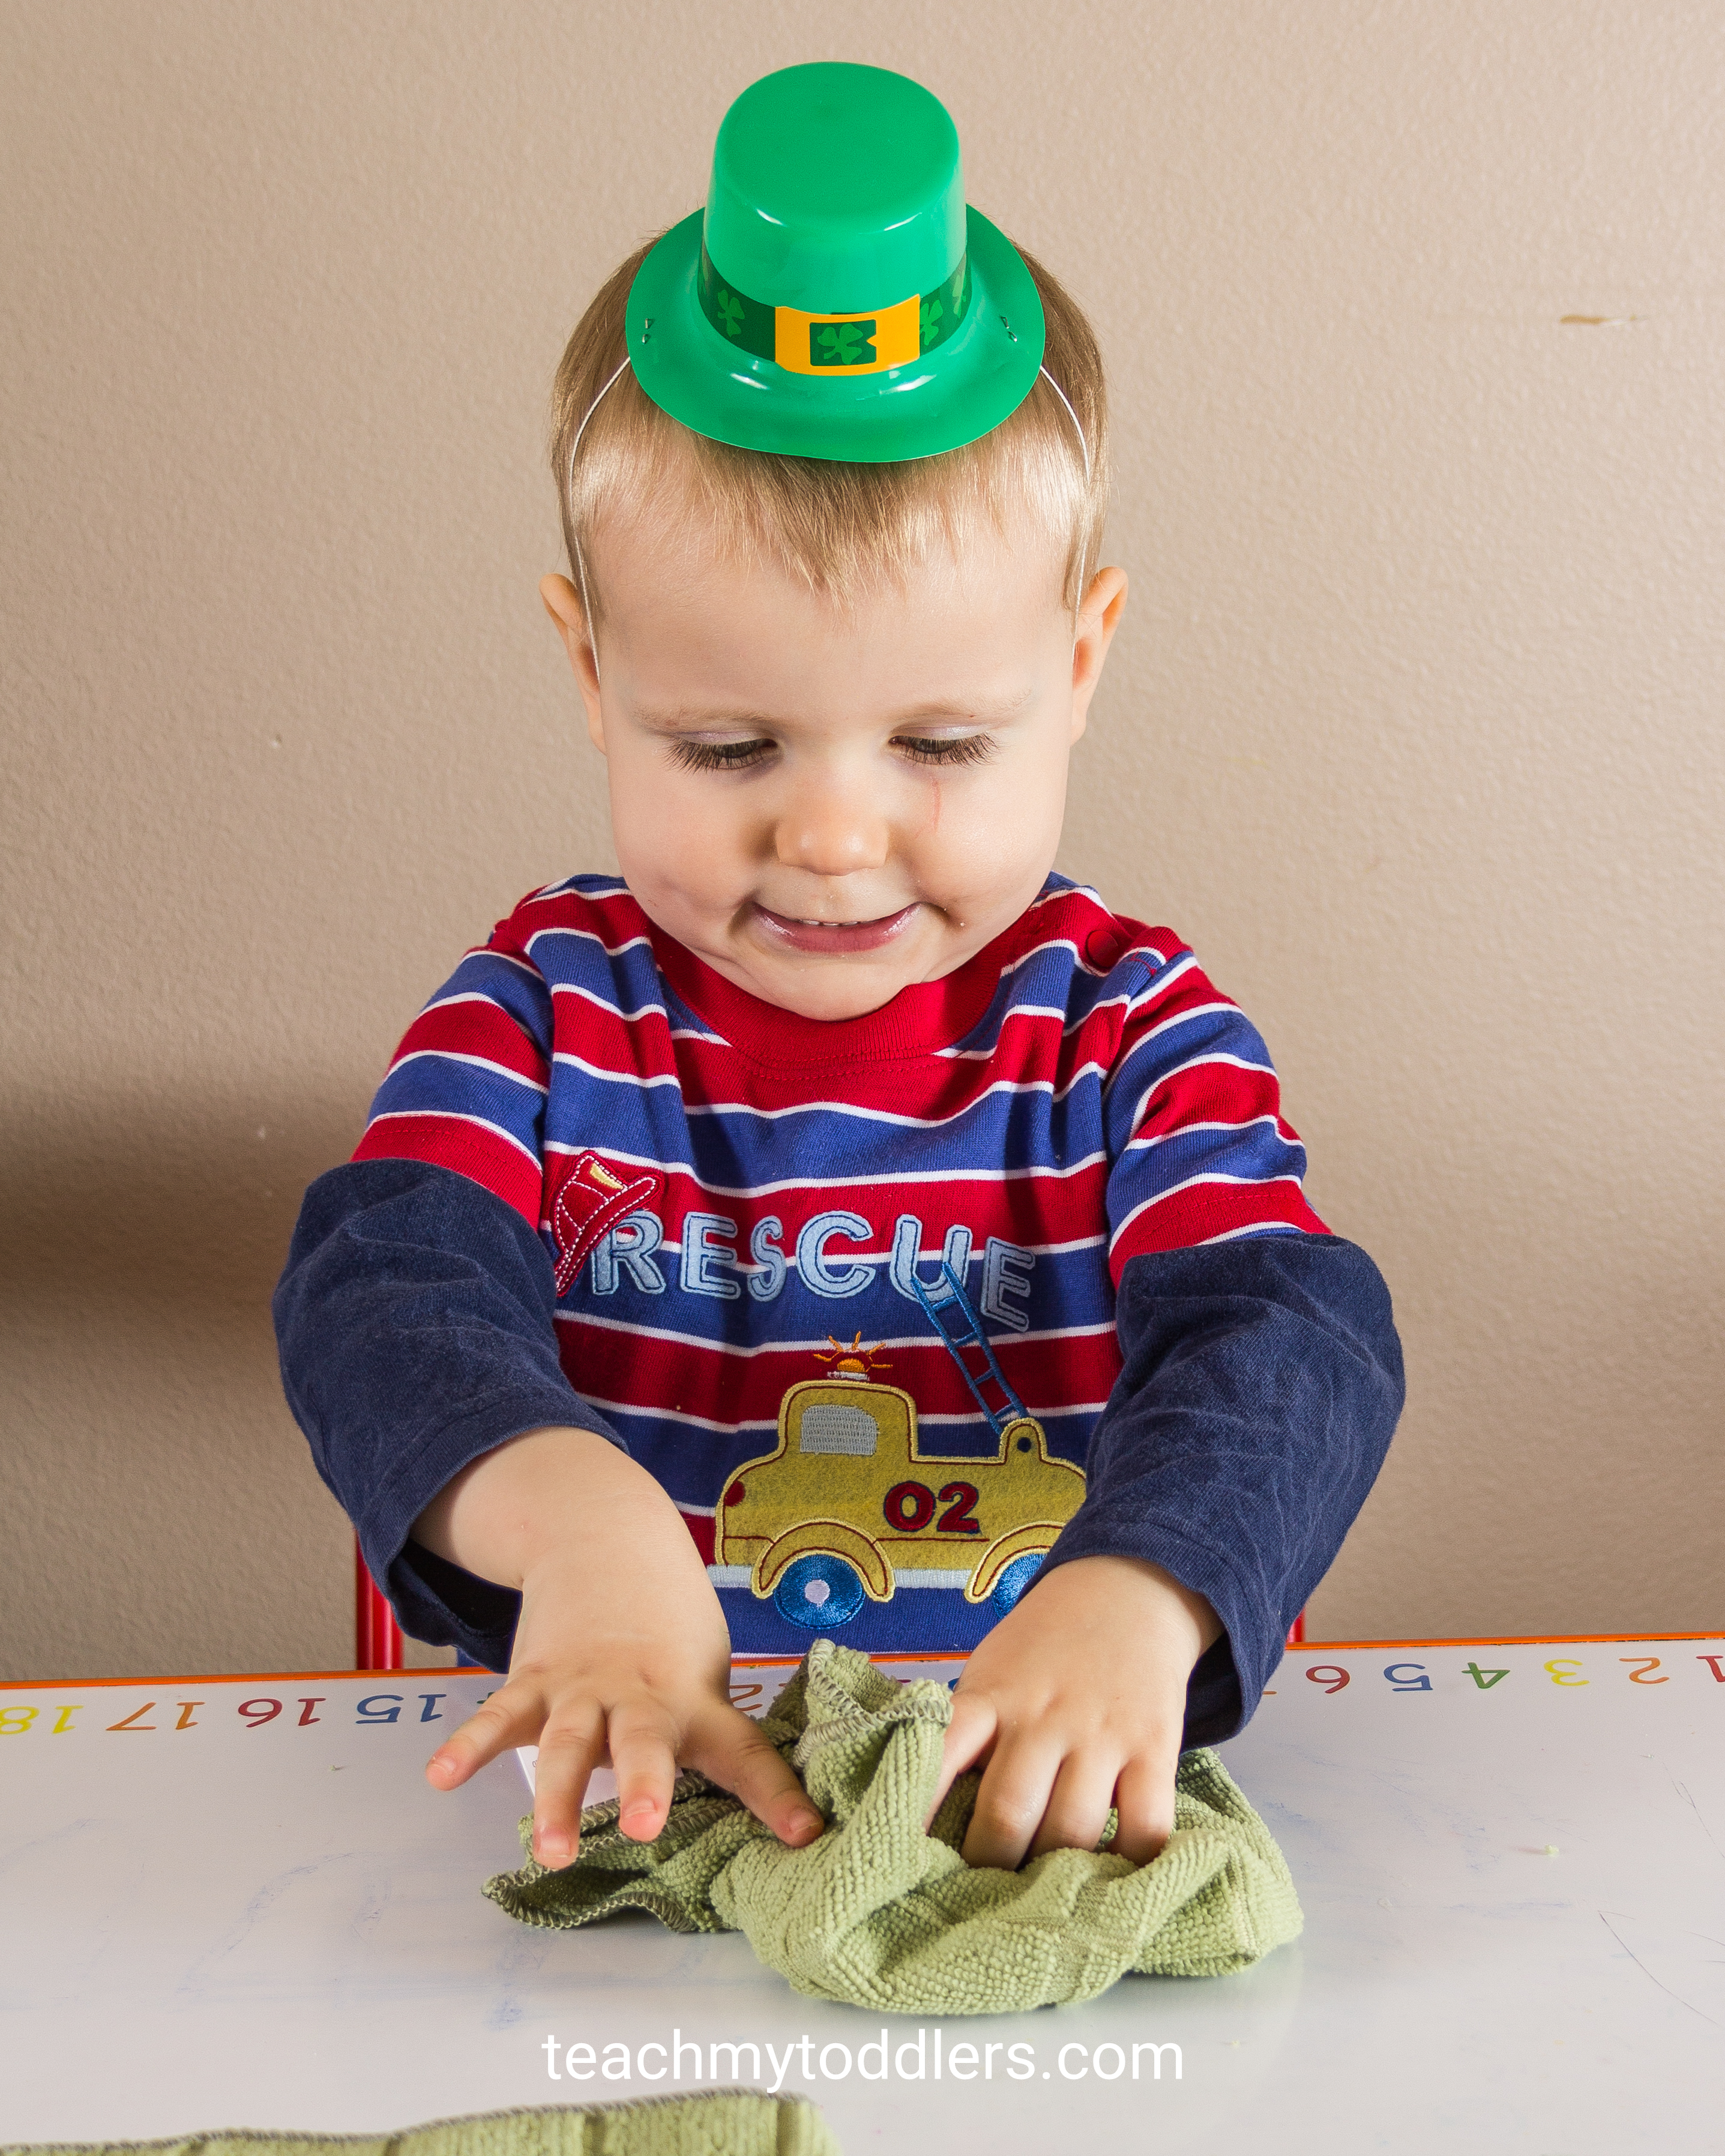 Use these great St. Patrick's Day activities to teach your toddlers about st. patrick's day